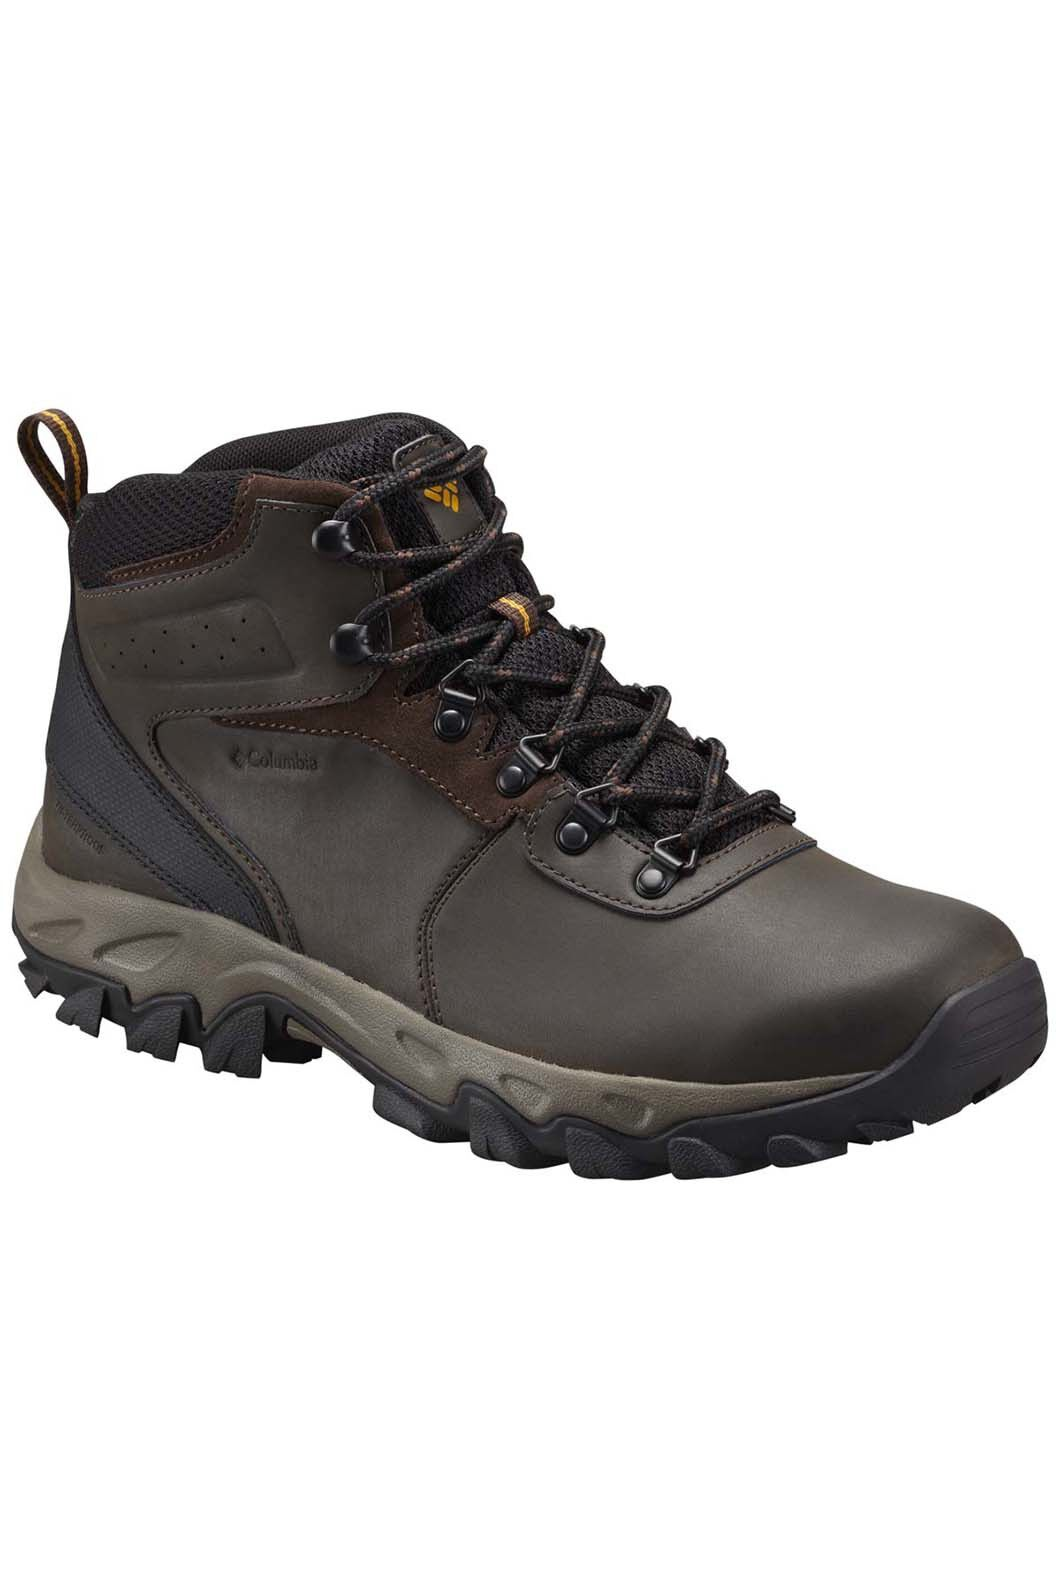 Columbia Men's Newton Ridge Plus II Hiking Boot, Brown, hi-res